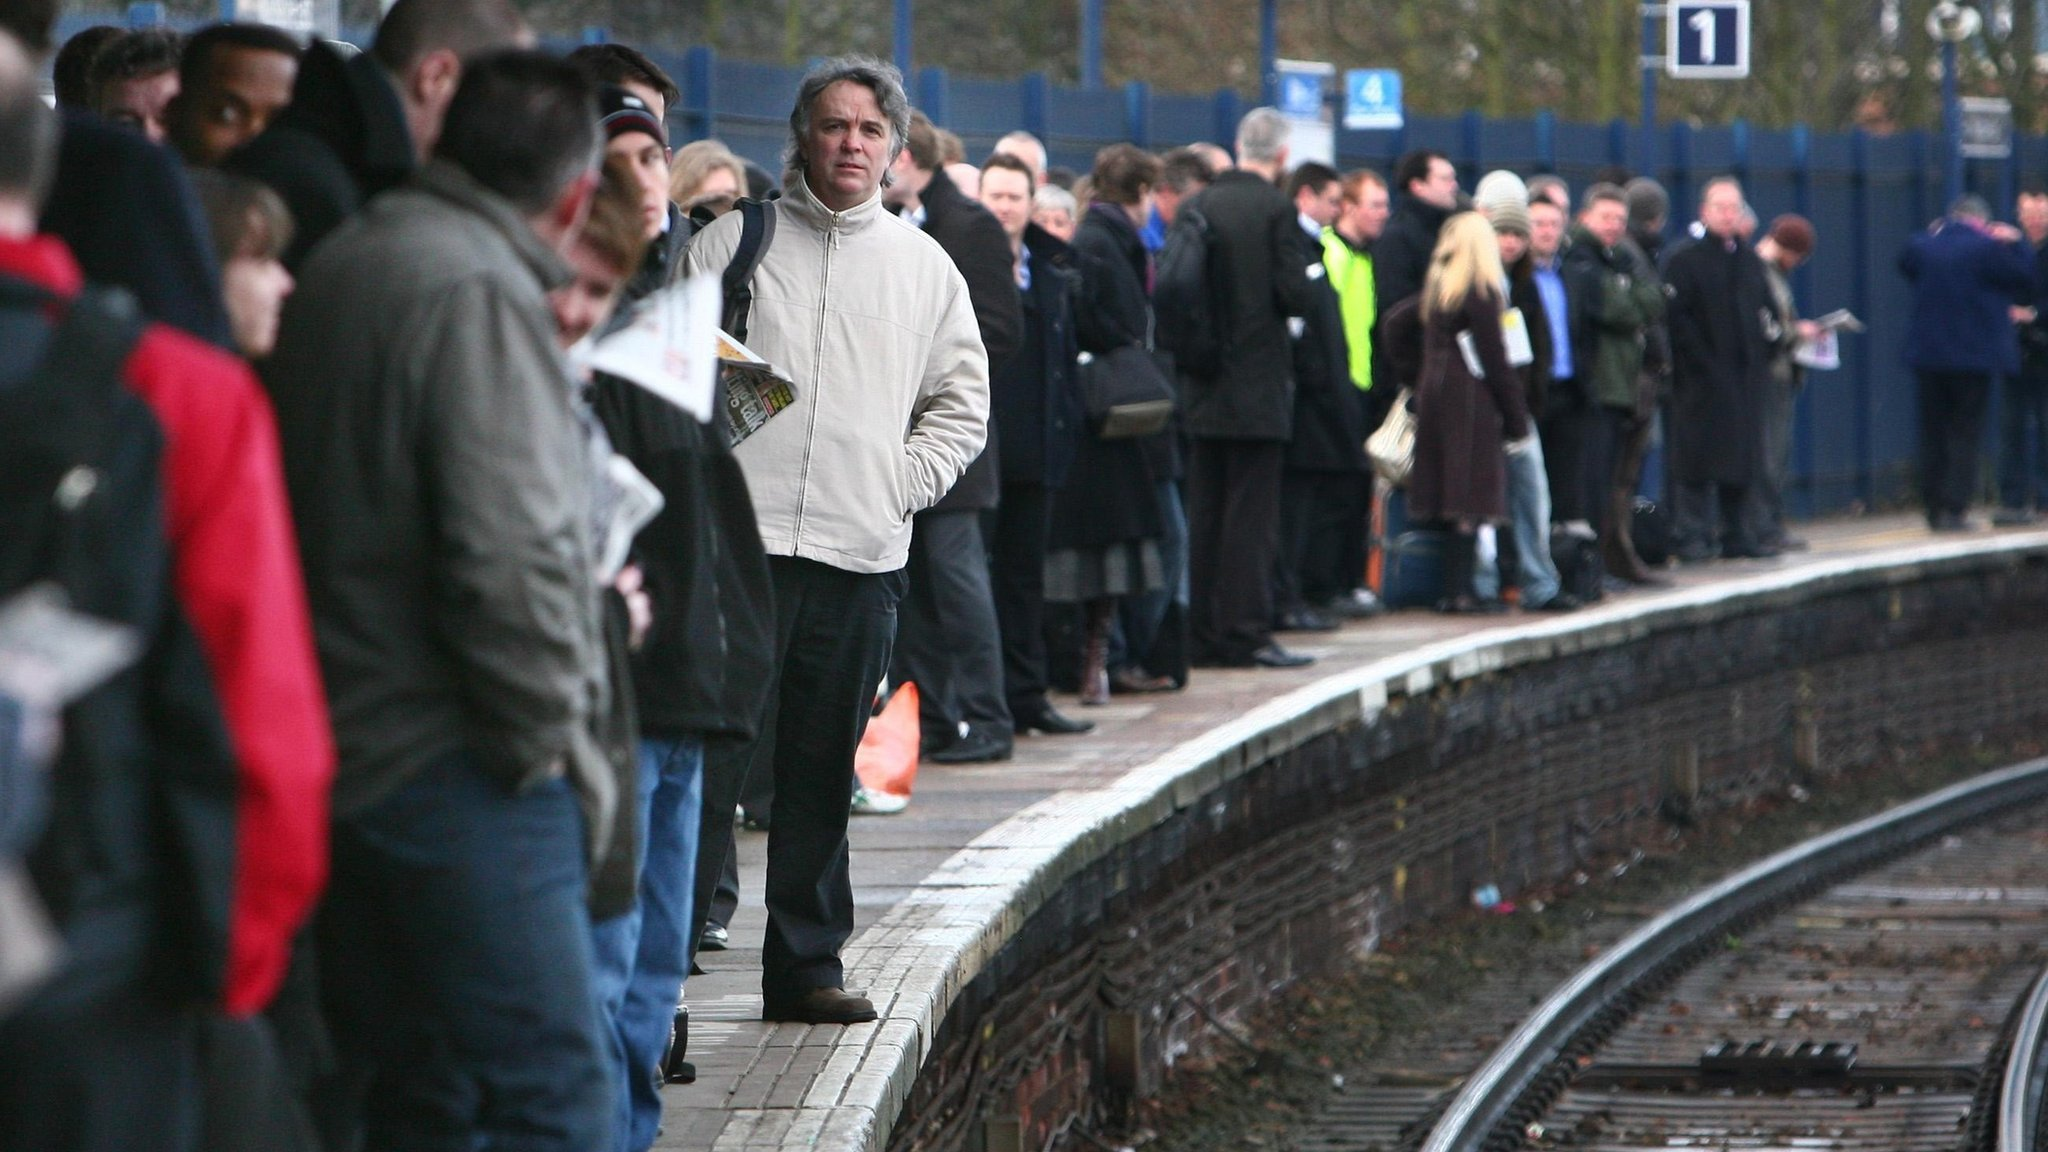 Rail delays are the 'worst for 12 years'